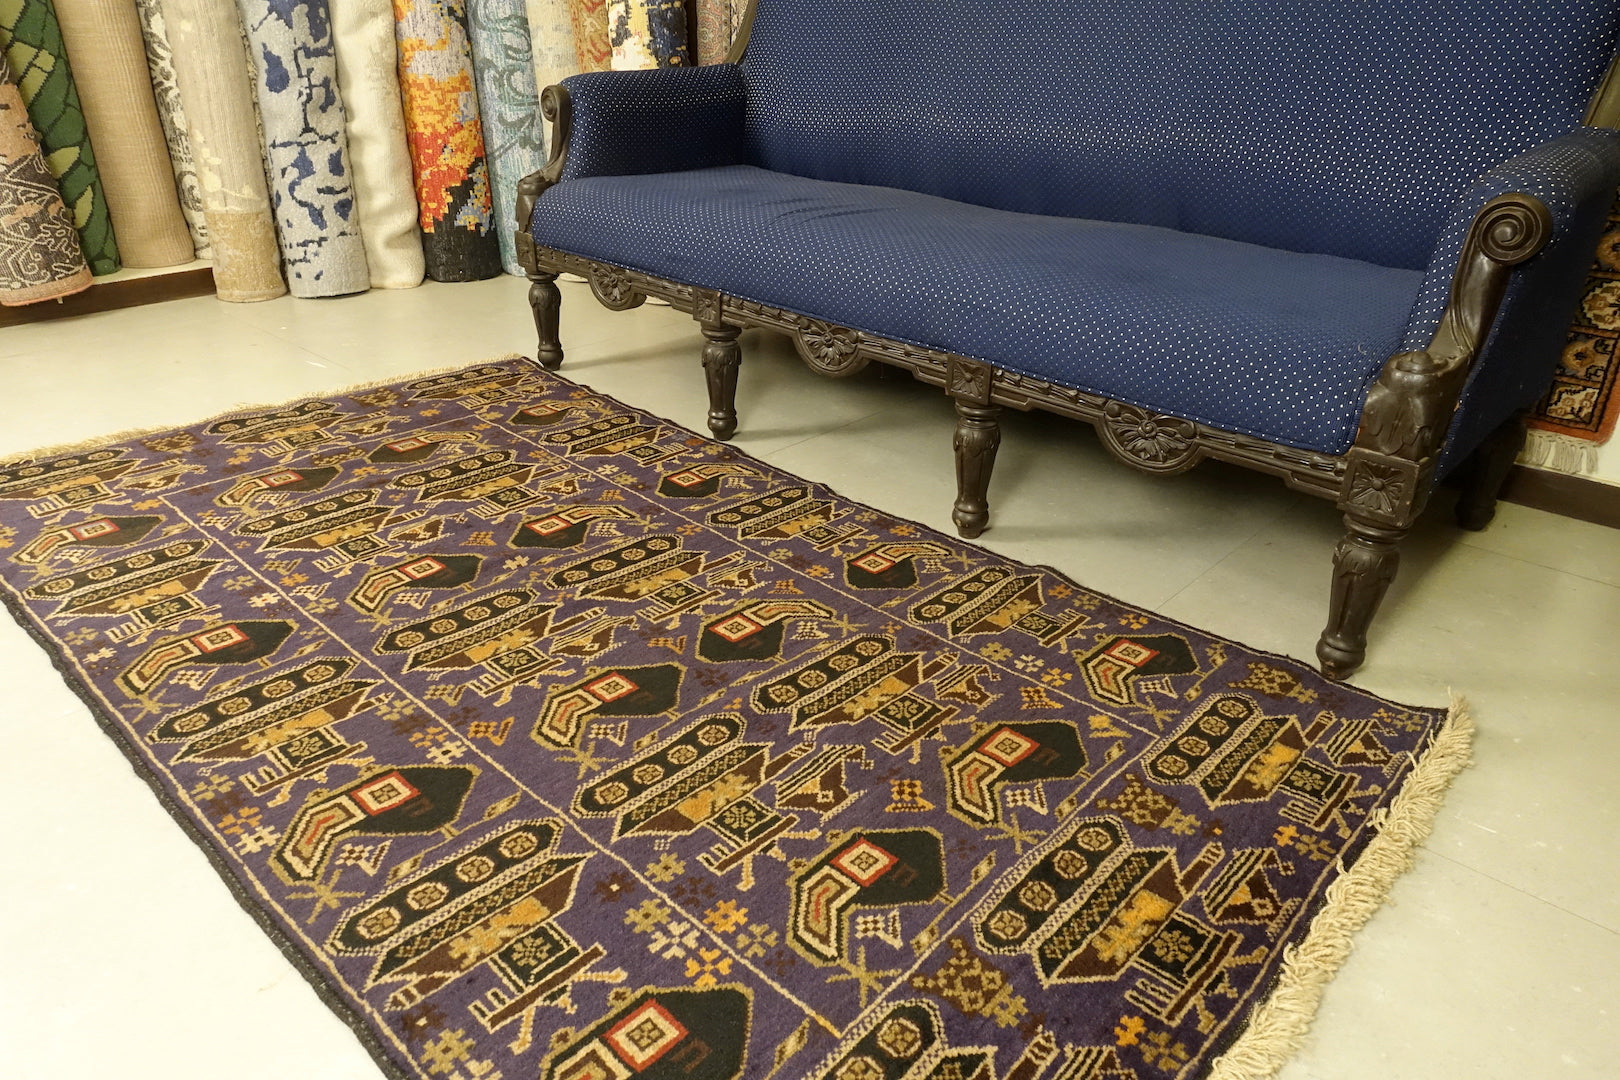 This Afghan wool rug measures 3 feet 8 inches by 6 feet 10 inches. The colours used on the rug are blue,red and brown.